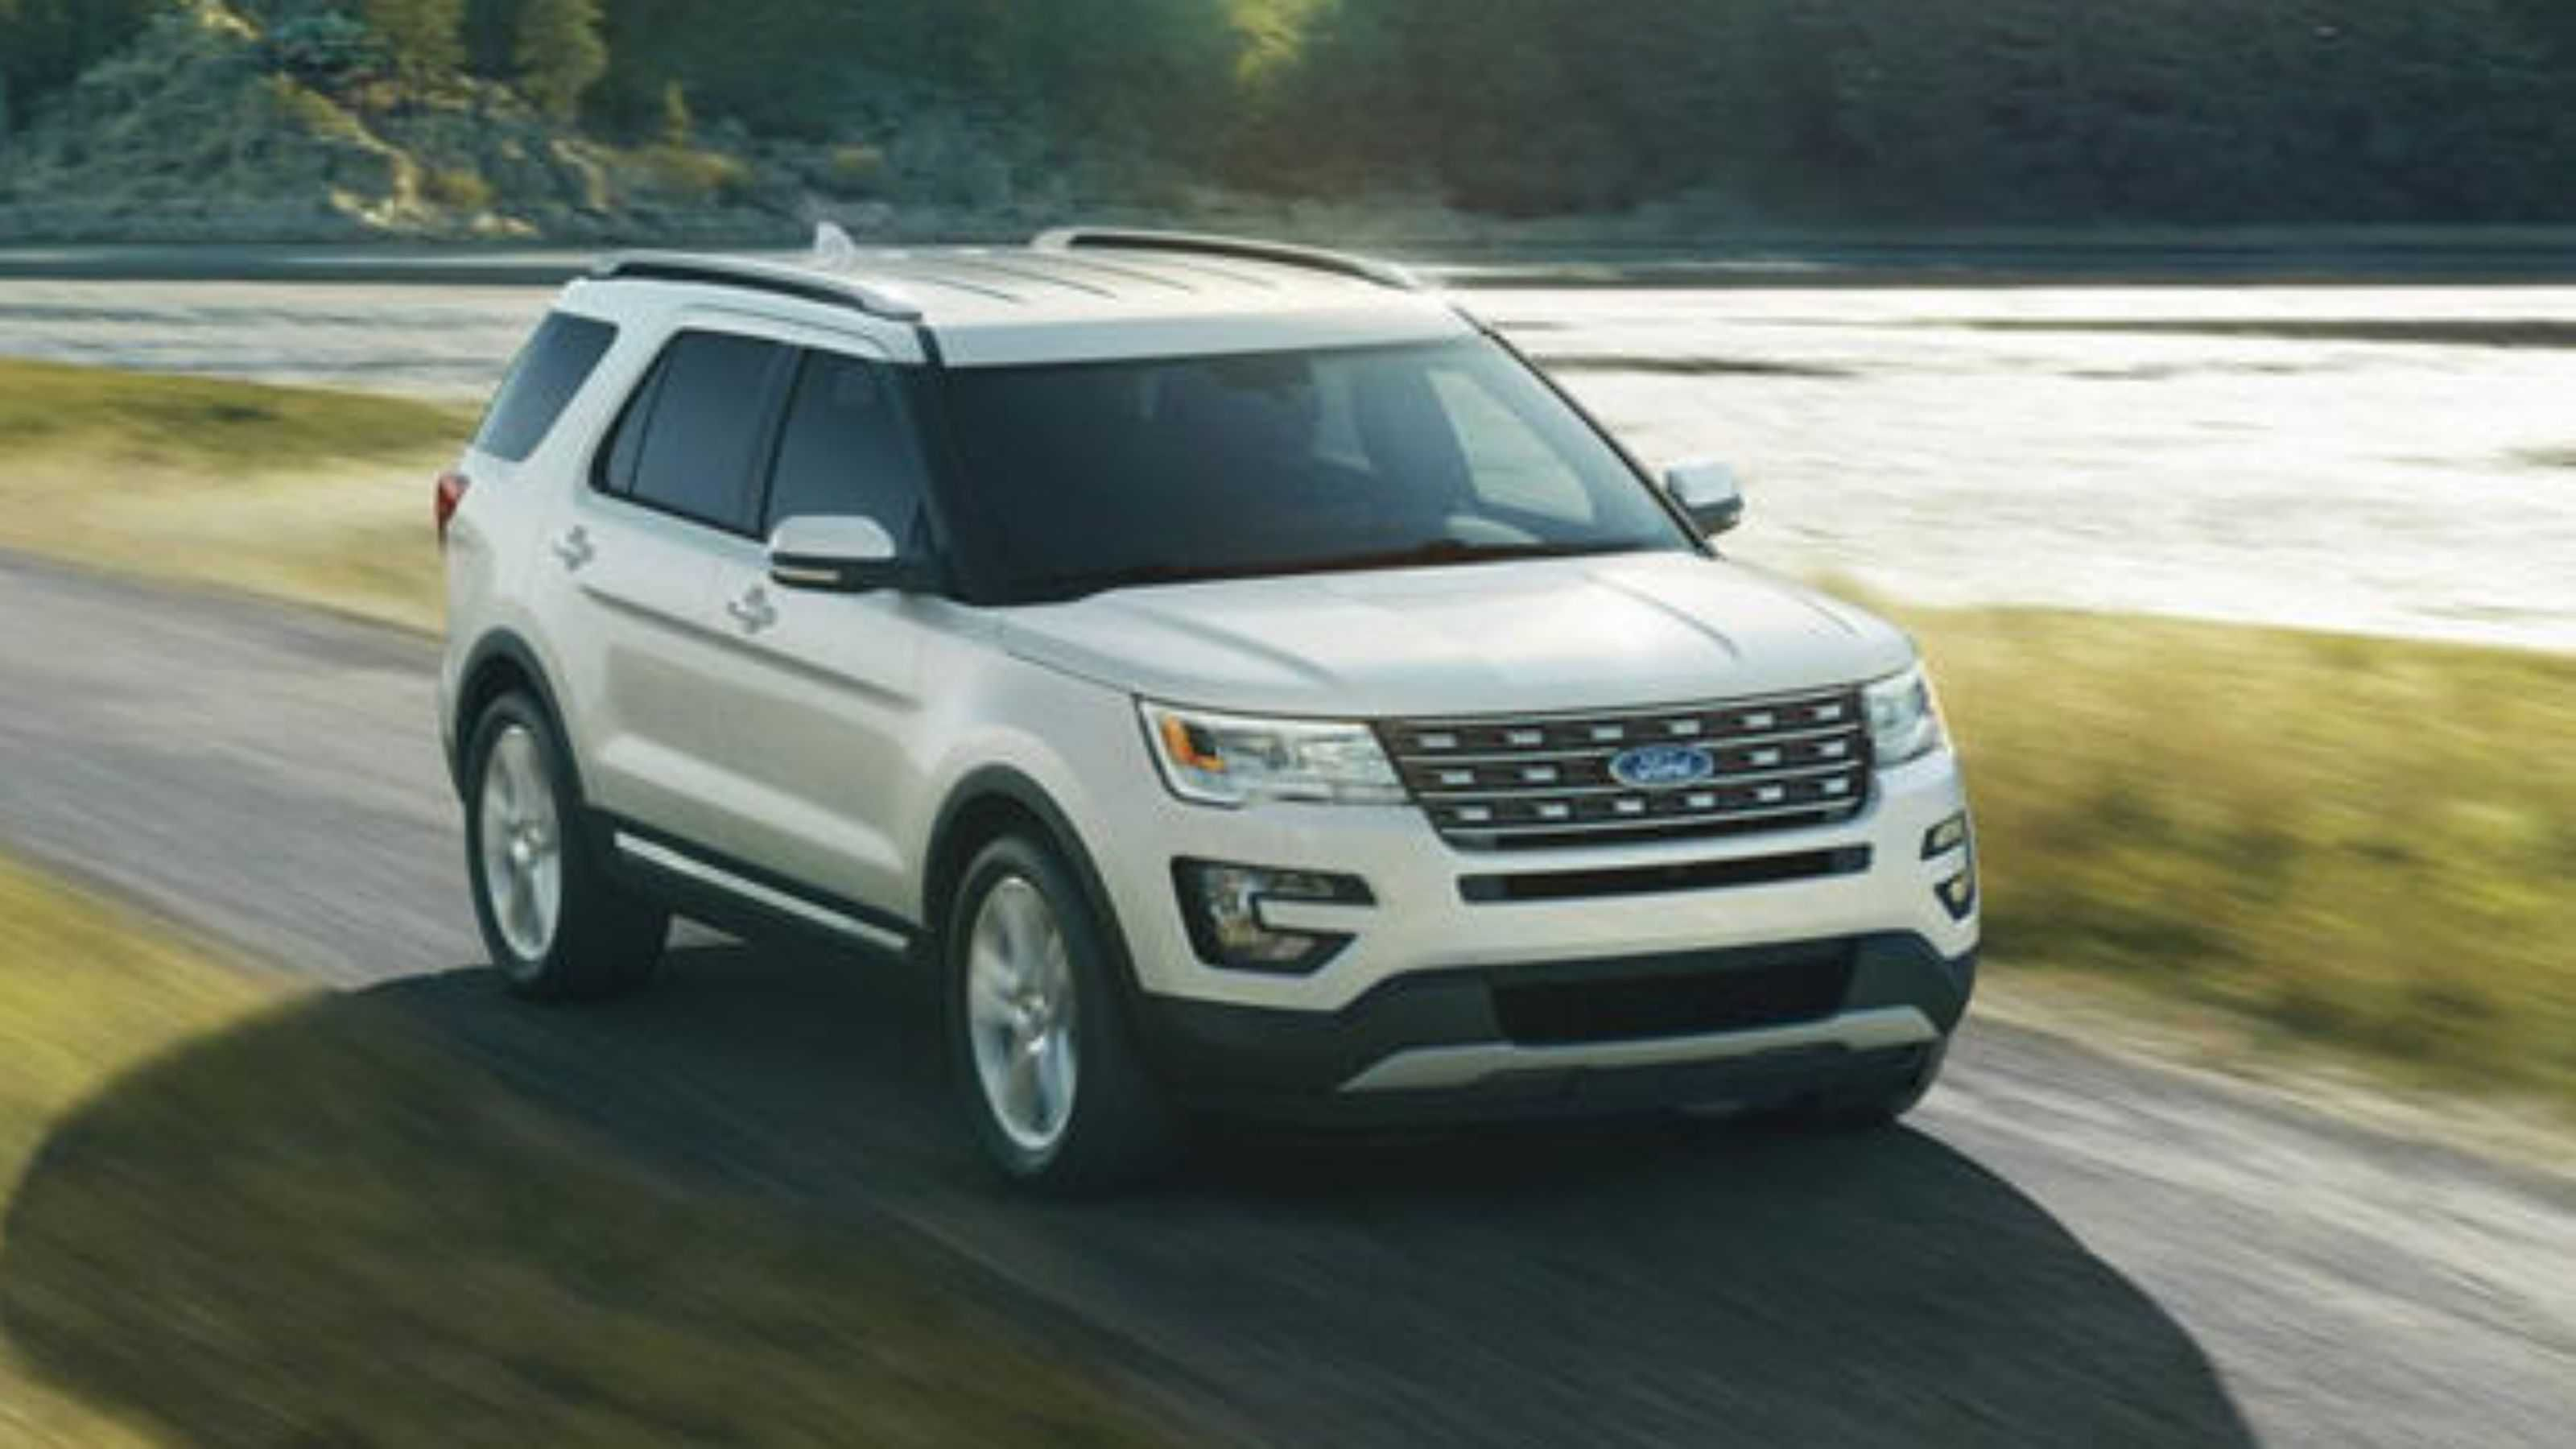 2018 ford explorer white - Ford Explorer 2018